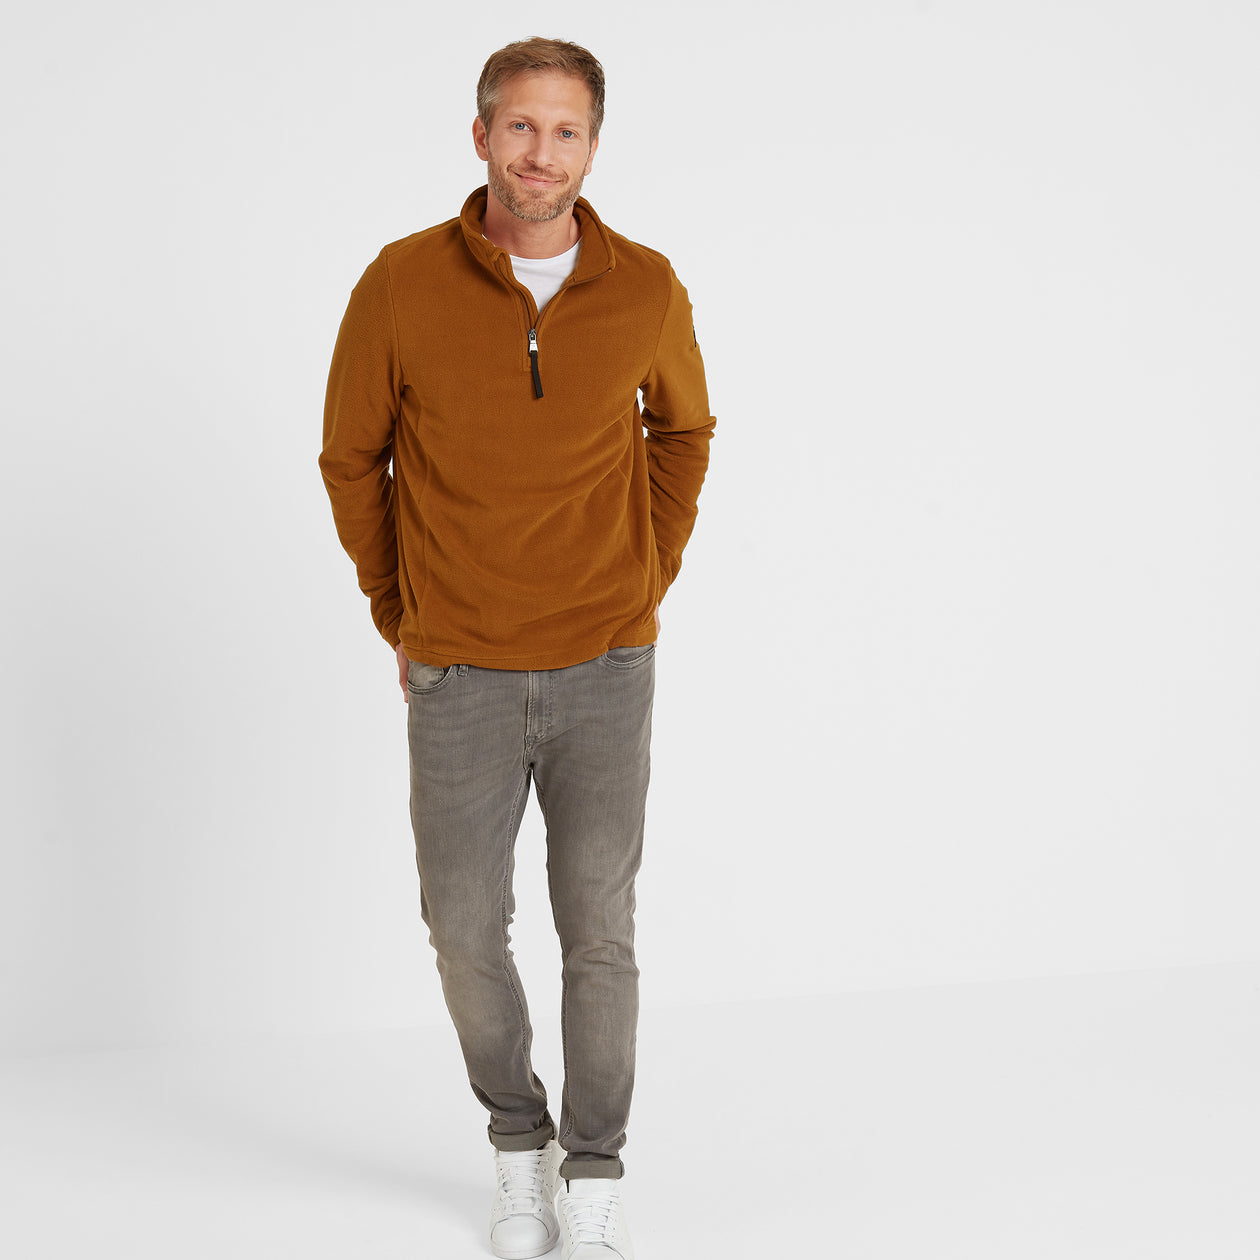 Shire Mens Fleece Zipneck - Amber image 4